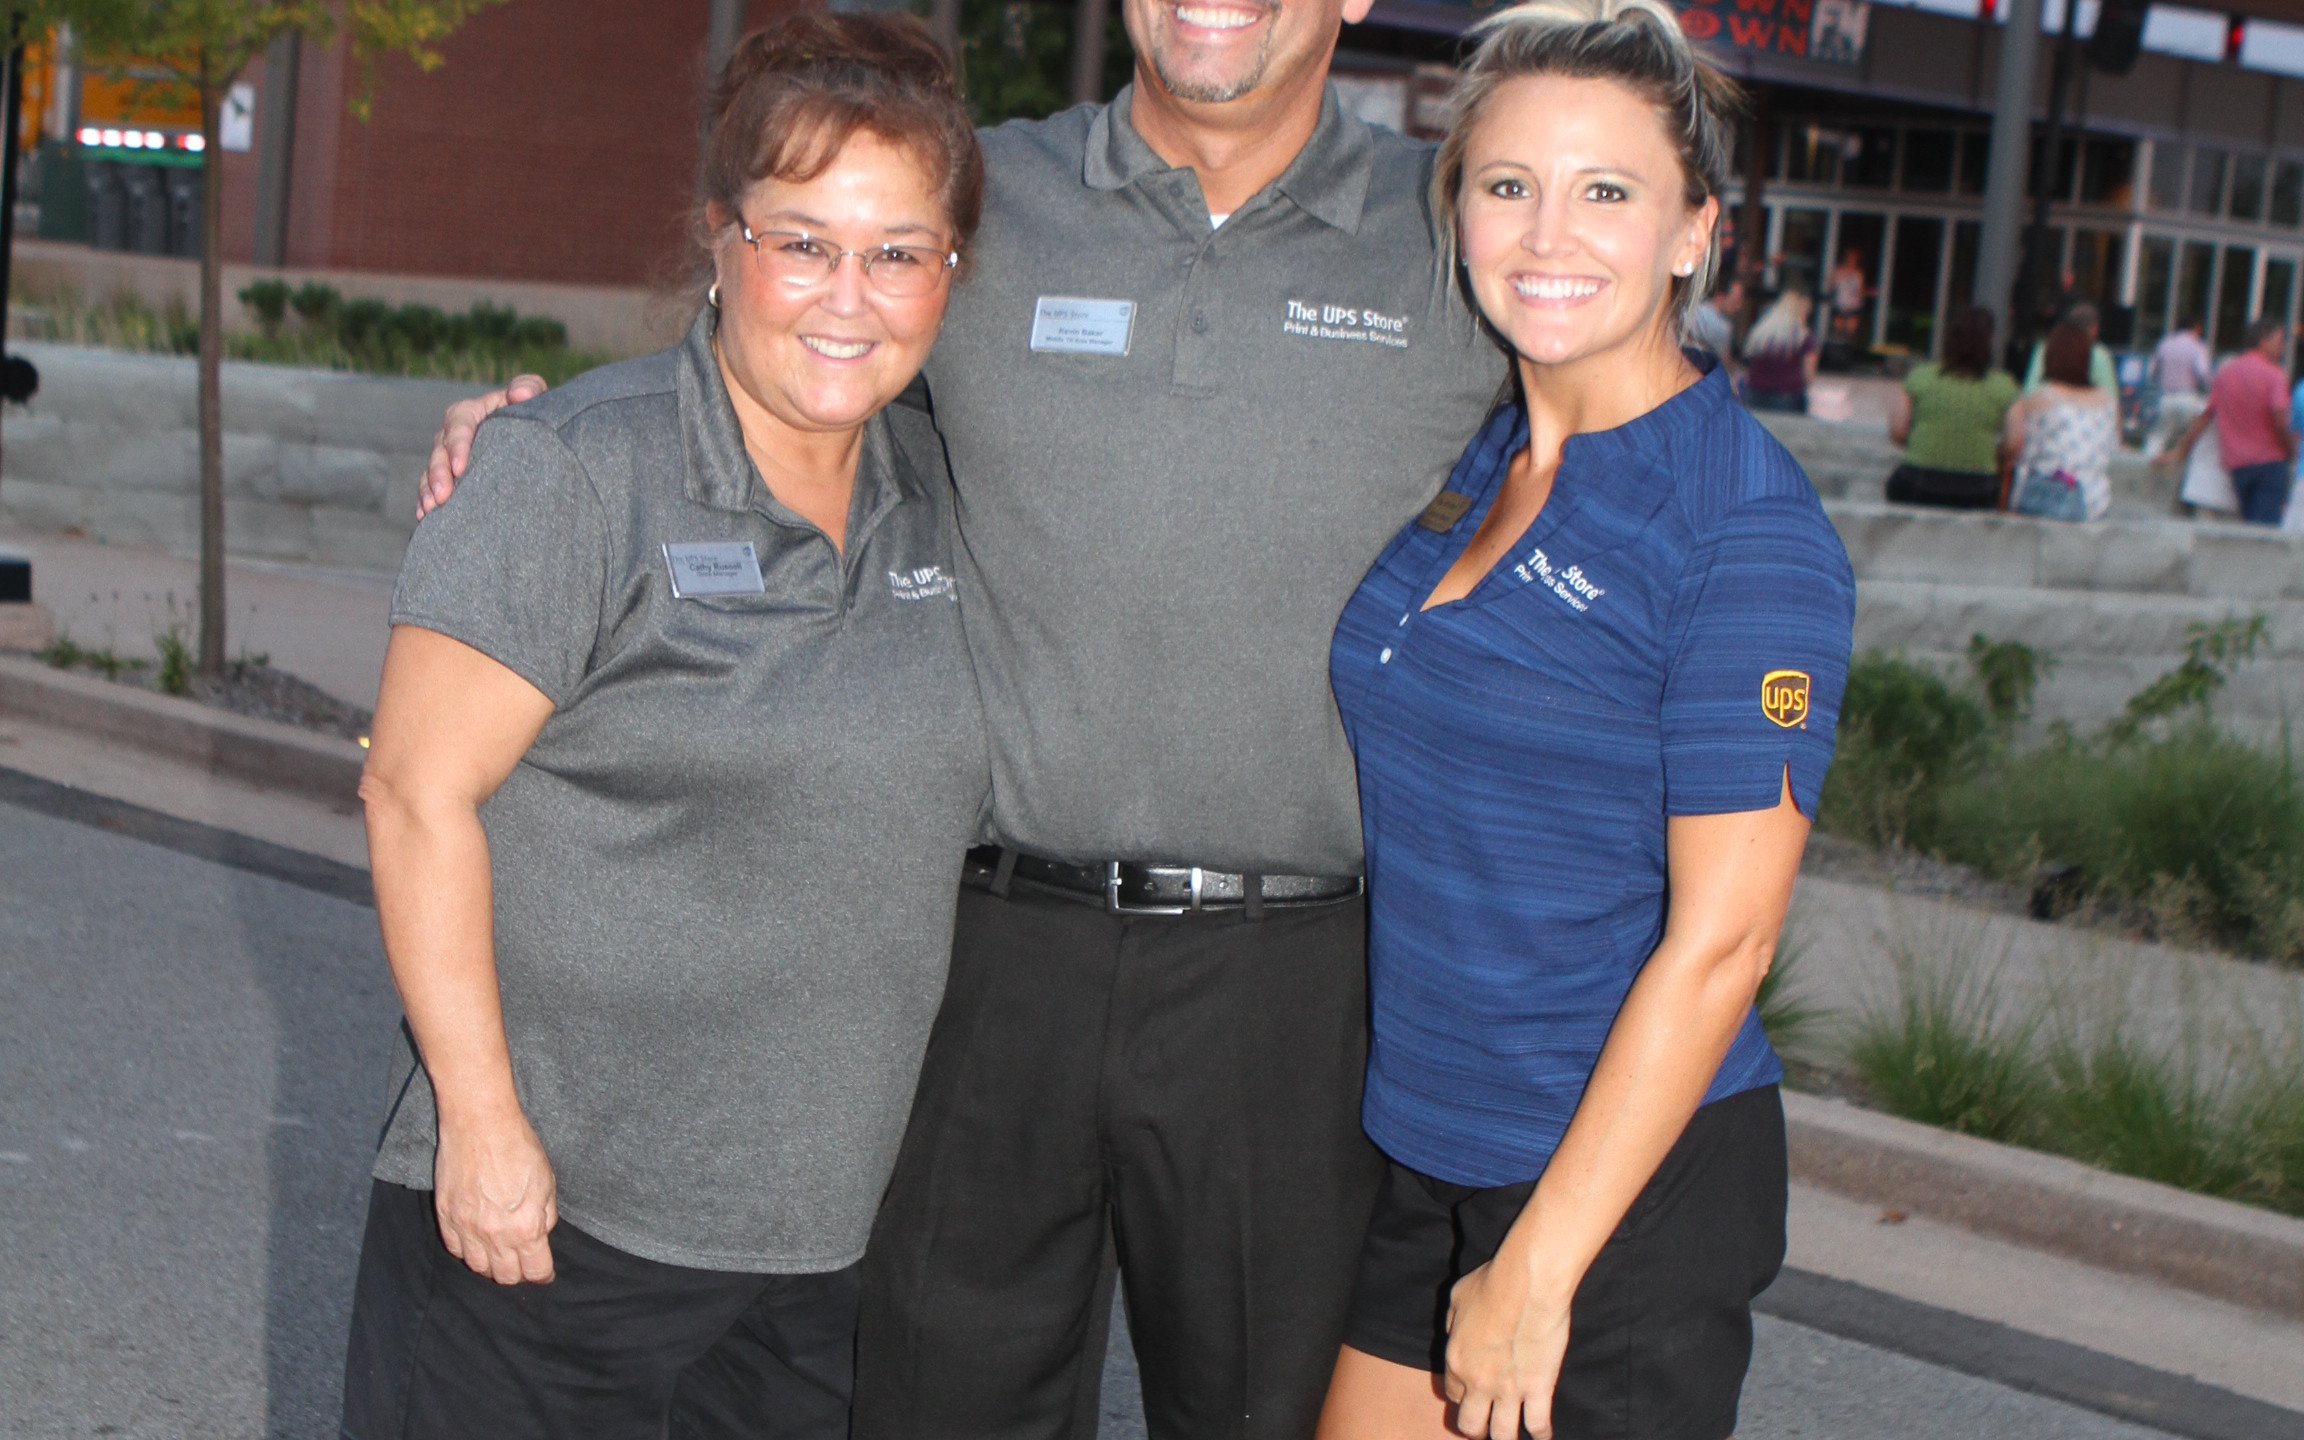 Cathy Russell, Kevin Baker, Brittany Mon